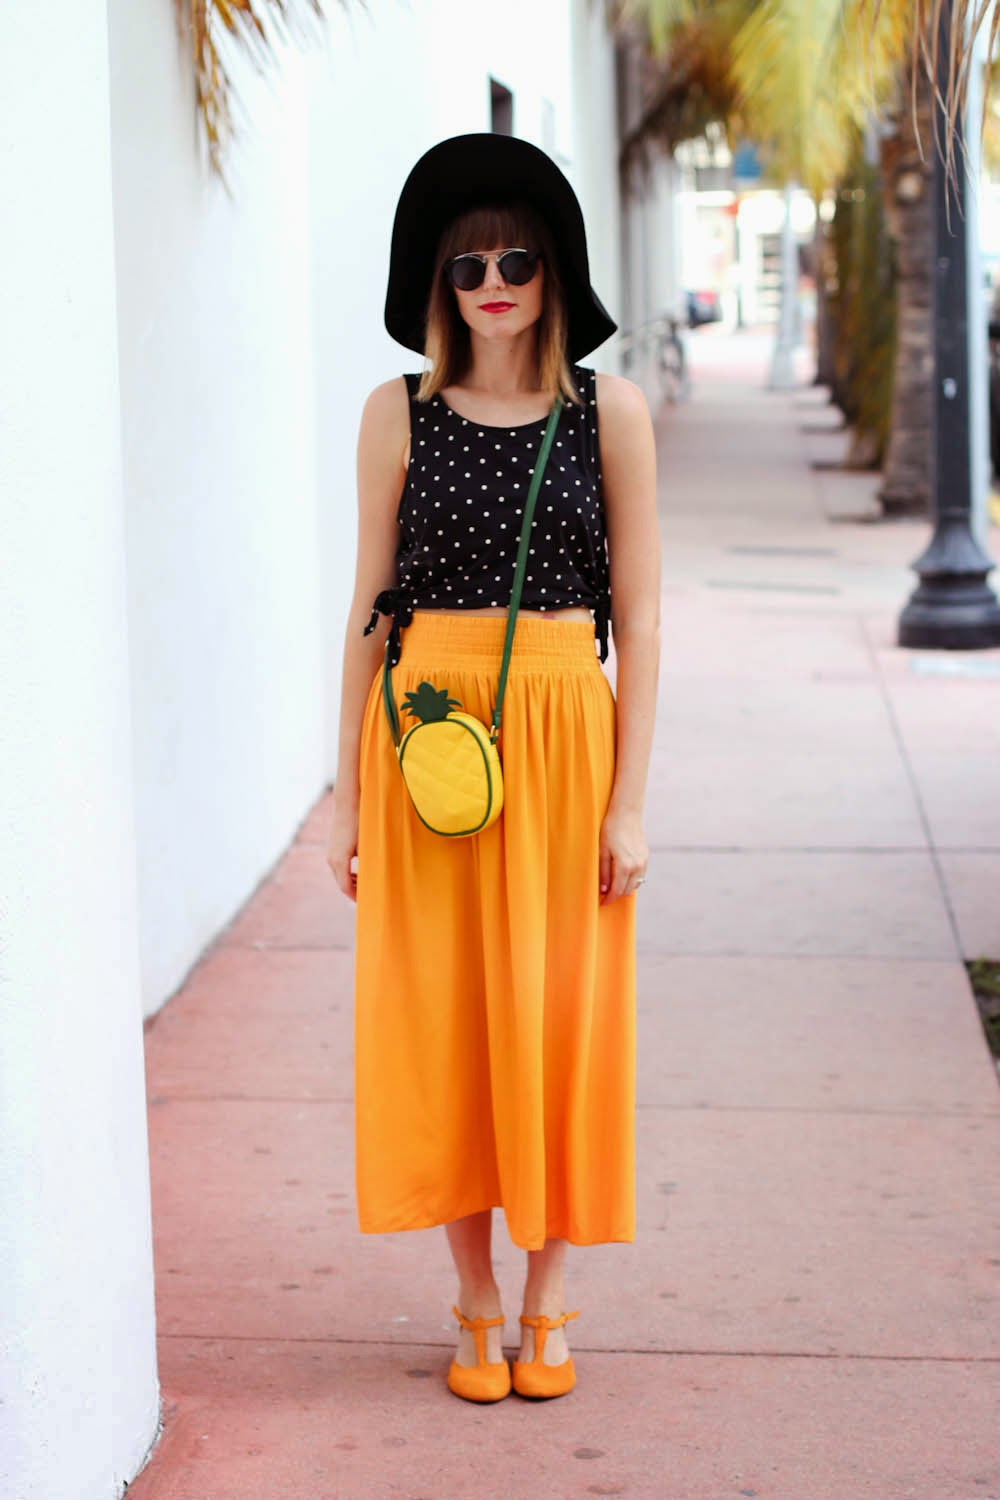 forever 21 polka dot top, mustard yellow skirt, asos pineapple bag, miami fashion blogger